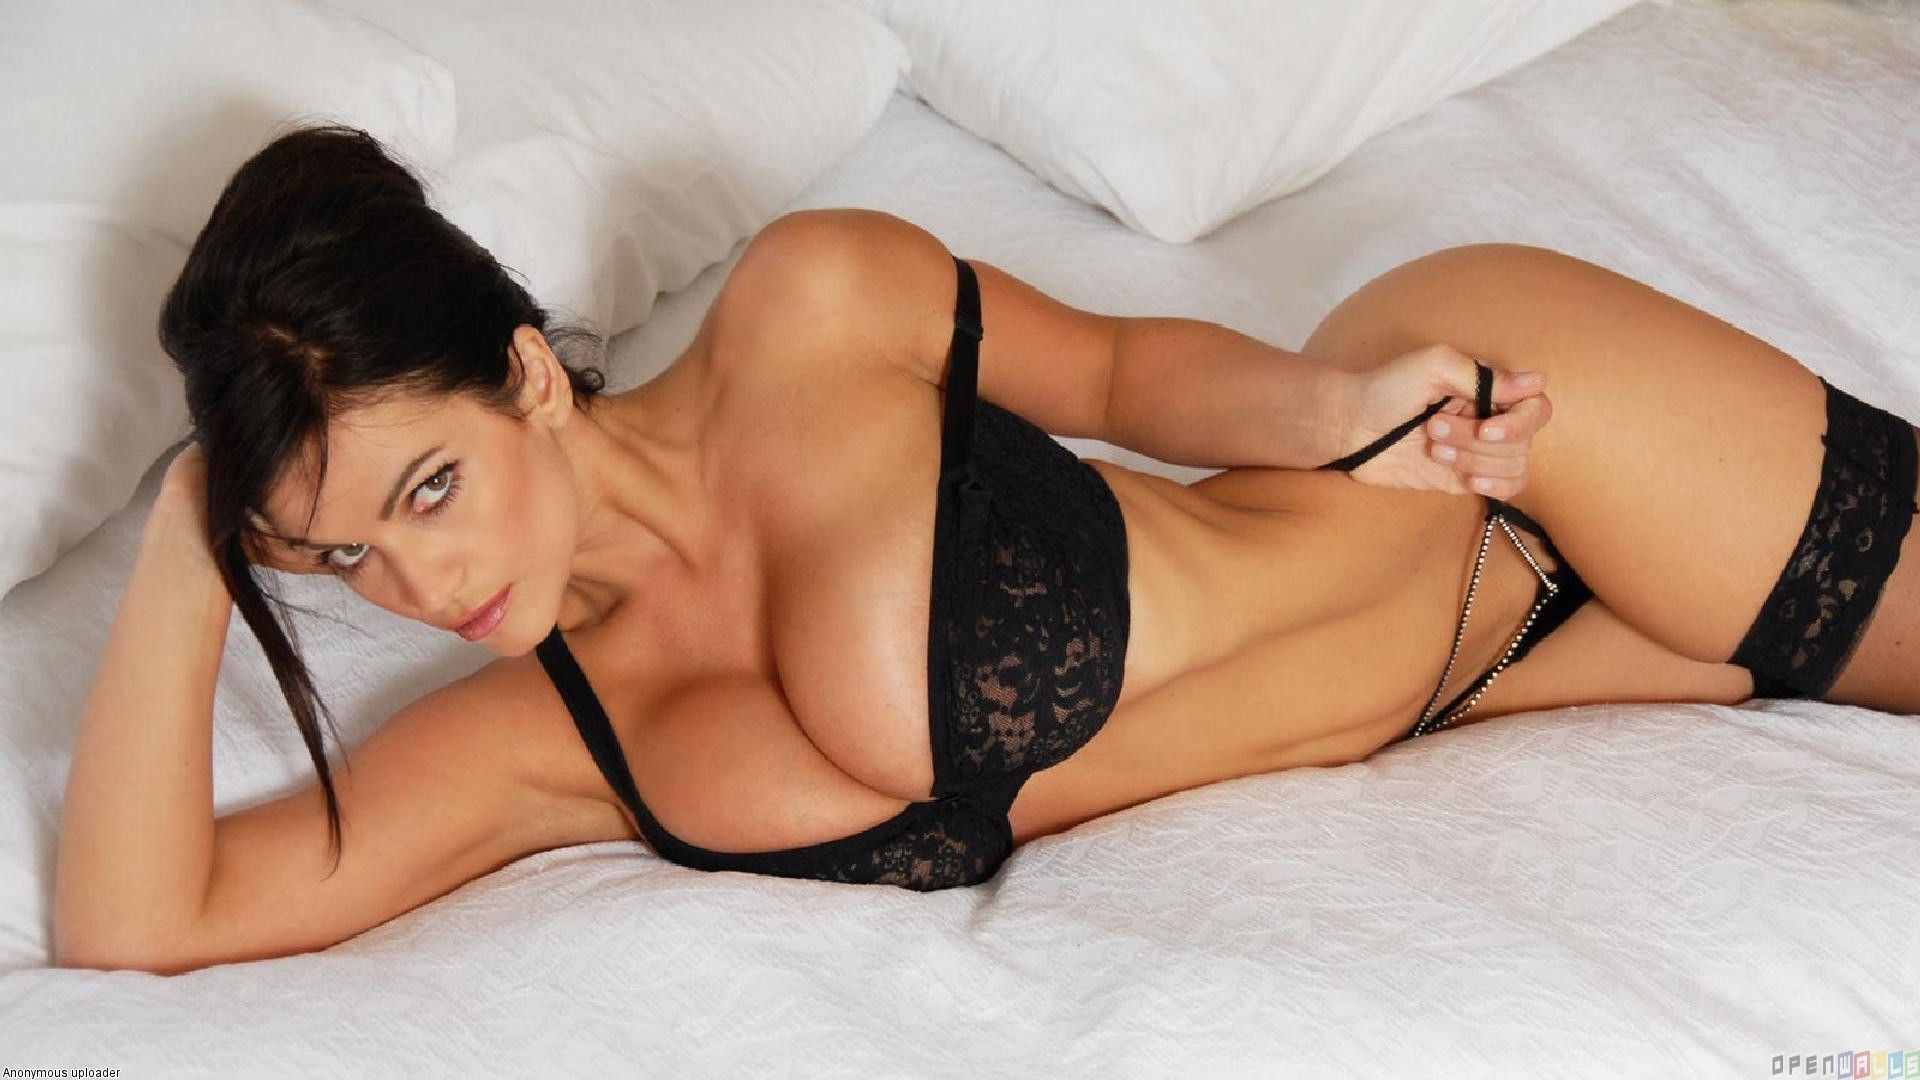 Variant understand denise milani 1920 x 1080 really. can